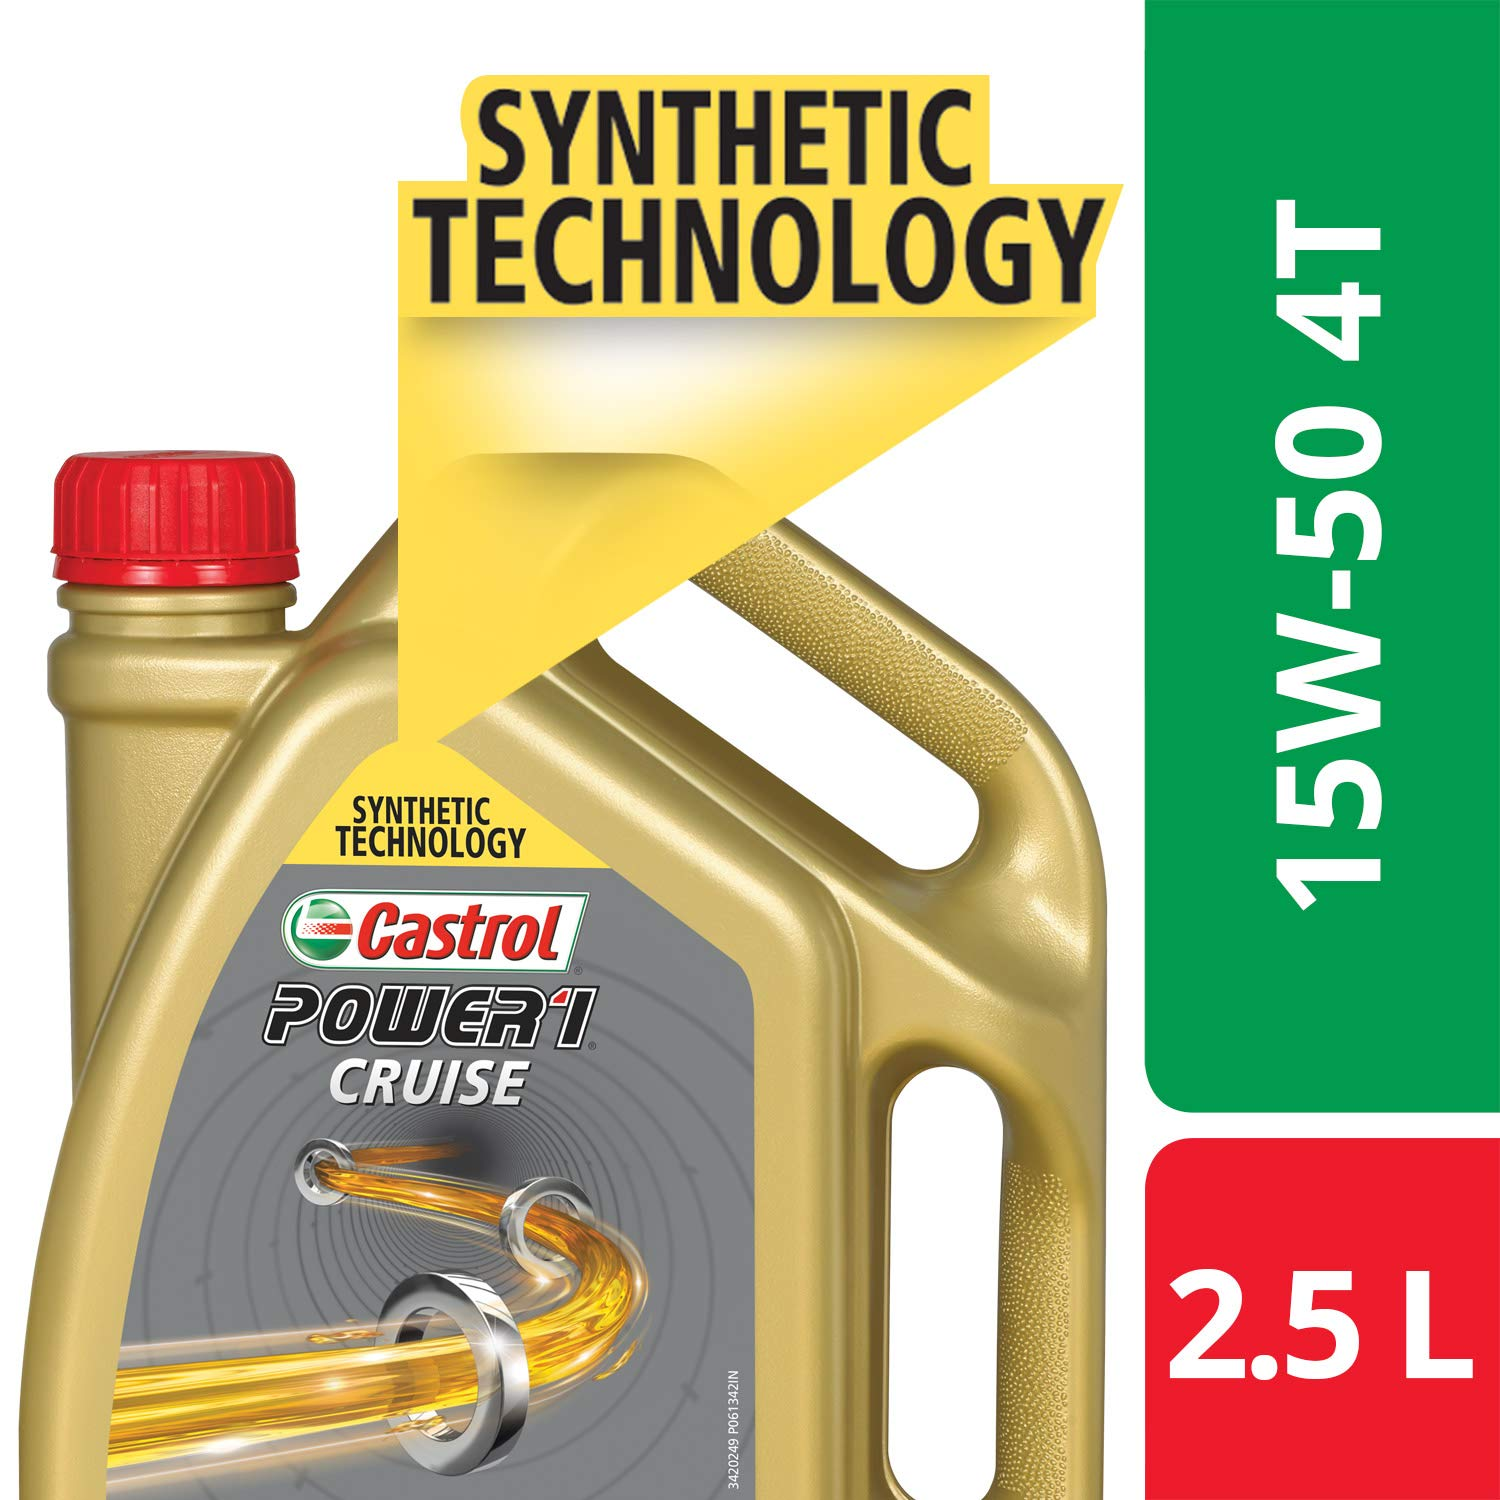 Castrol POWER1 Cruise 4T 15W-50 API SN Synthetic Engine Oil for Bikes (2 5L)